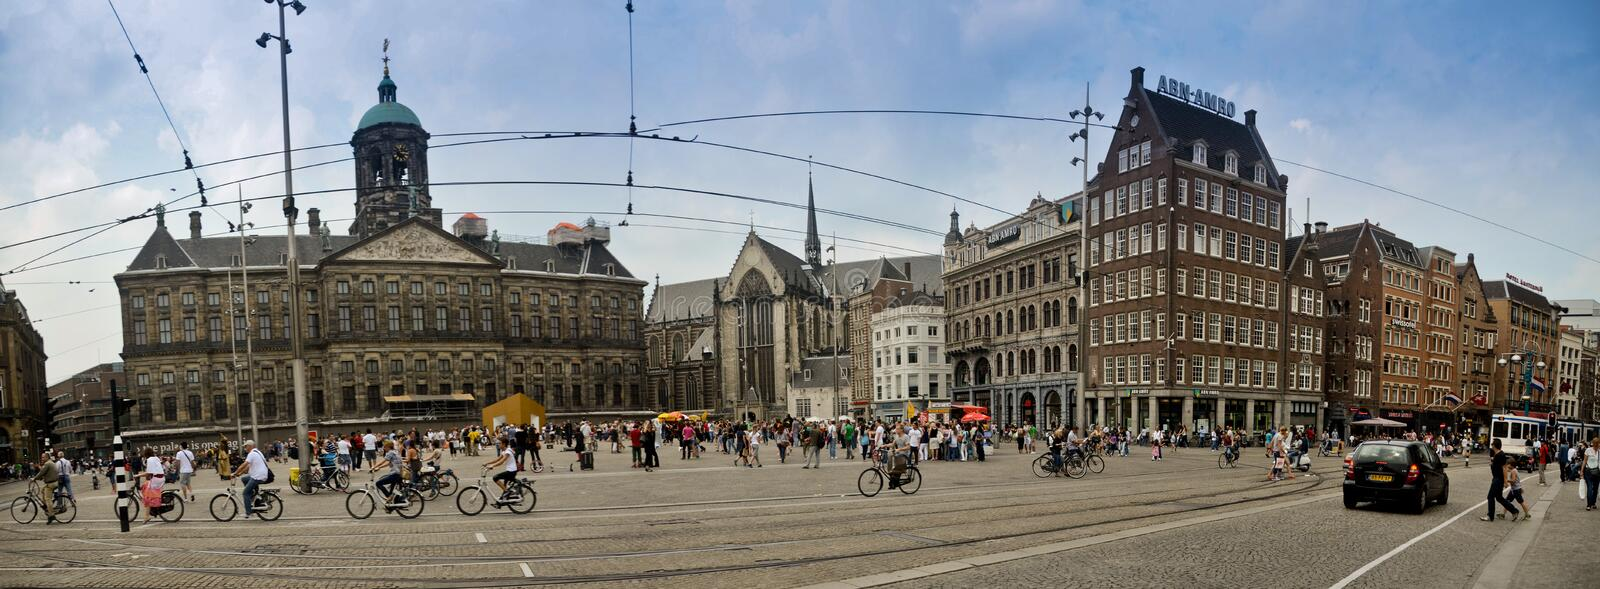 Dam Square in Amsterdam royalty free stock photos